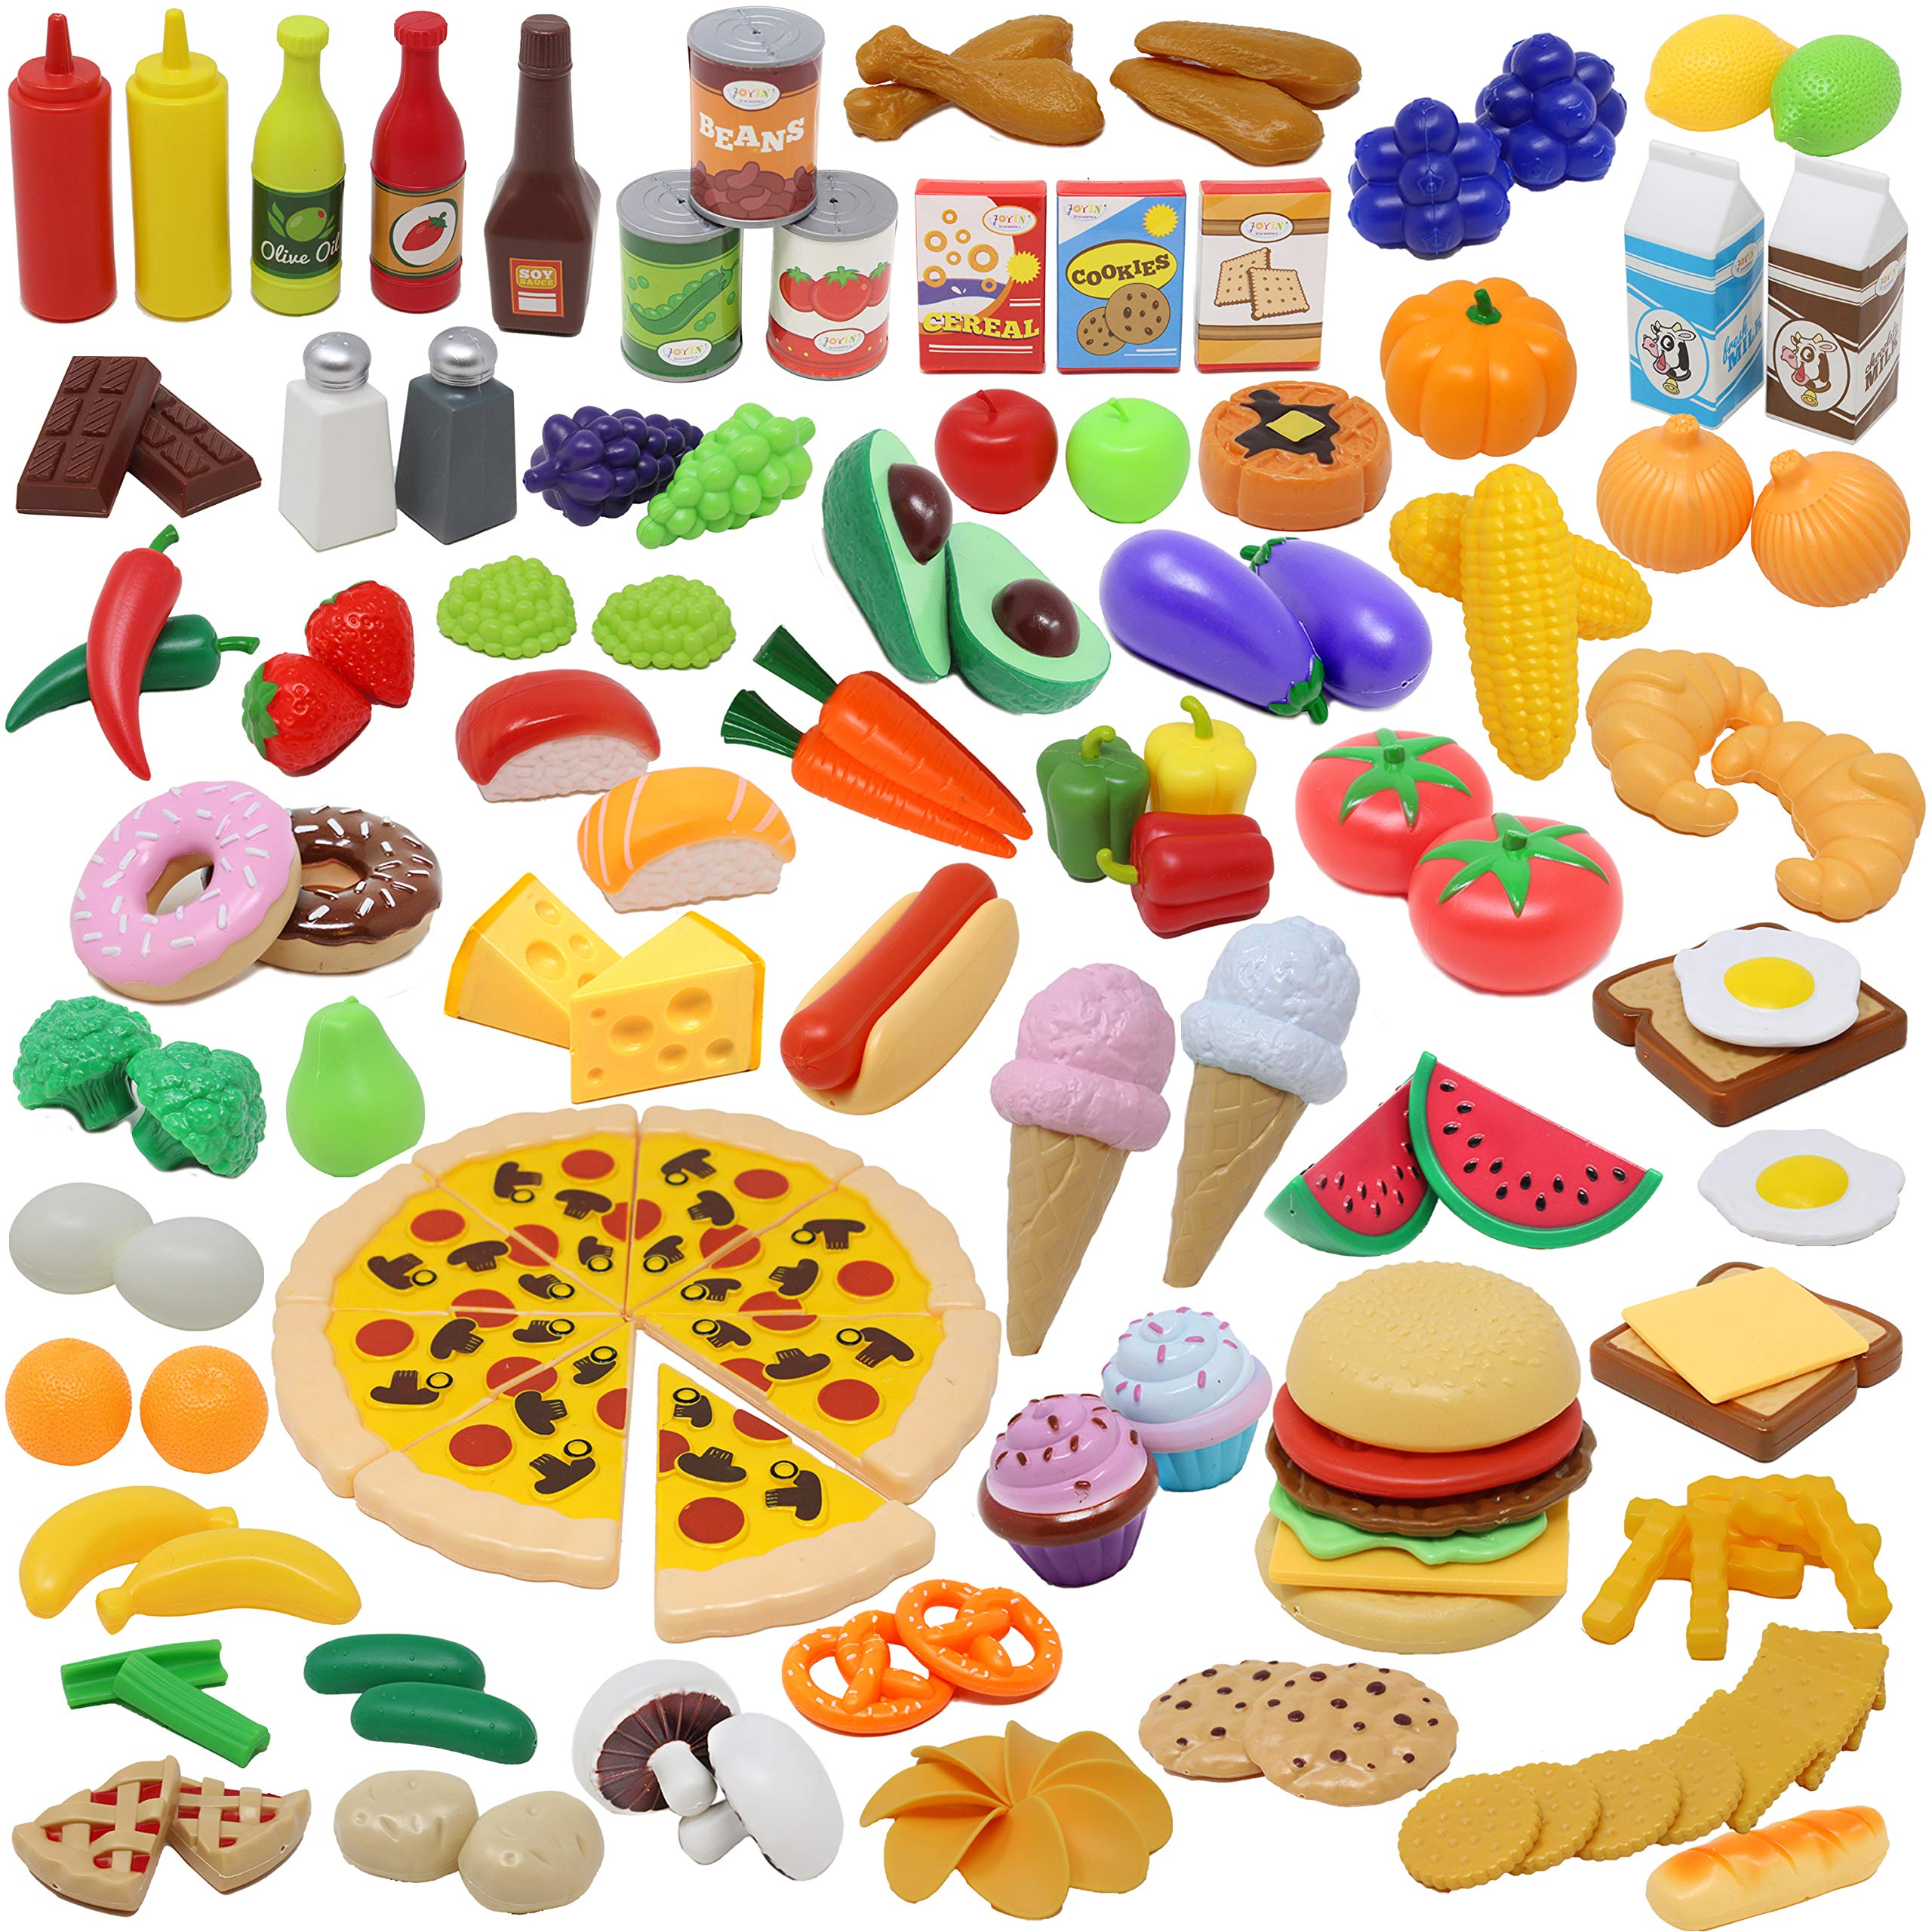 JOYIN Play Food Set 135 Pieces Play Kitchen Set for Market Educational Pretend Play, Food Playset, Kids Toddlers Toys, Kitchen Accessories Fake Food, Party Favor Supplies, Holiday by JOYIN